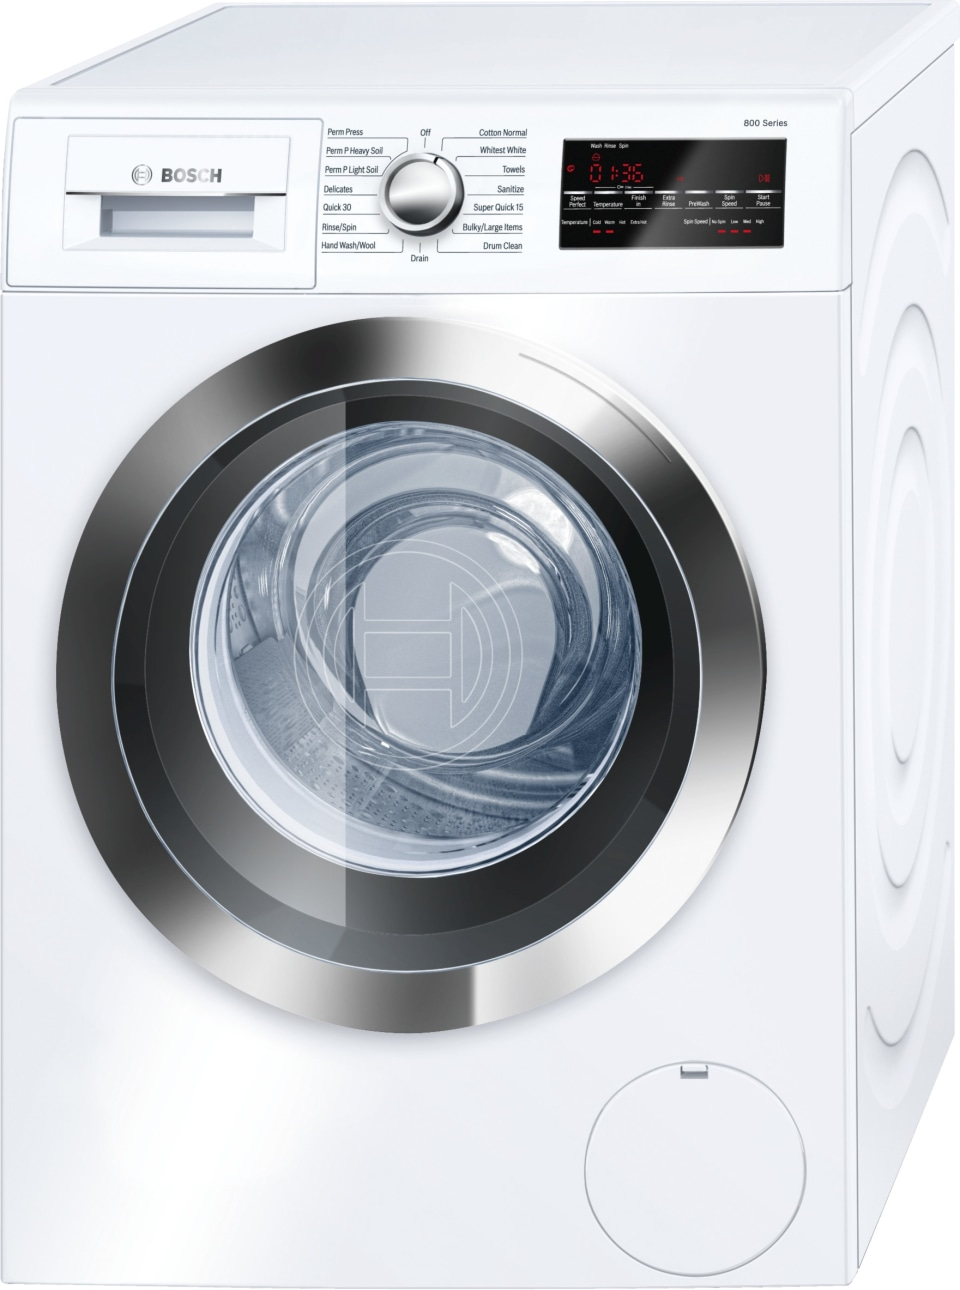 Washer Tray Lowes : washer, lowes, Bosch, 2.2-cu, Efficiency, Stackable, Front-Load, Washer, (White/Chrome, Trim), ENERGY, Lowe's, Canada